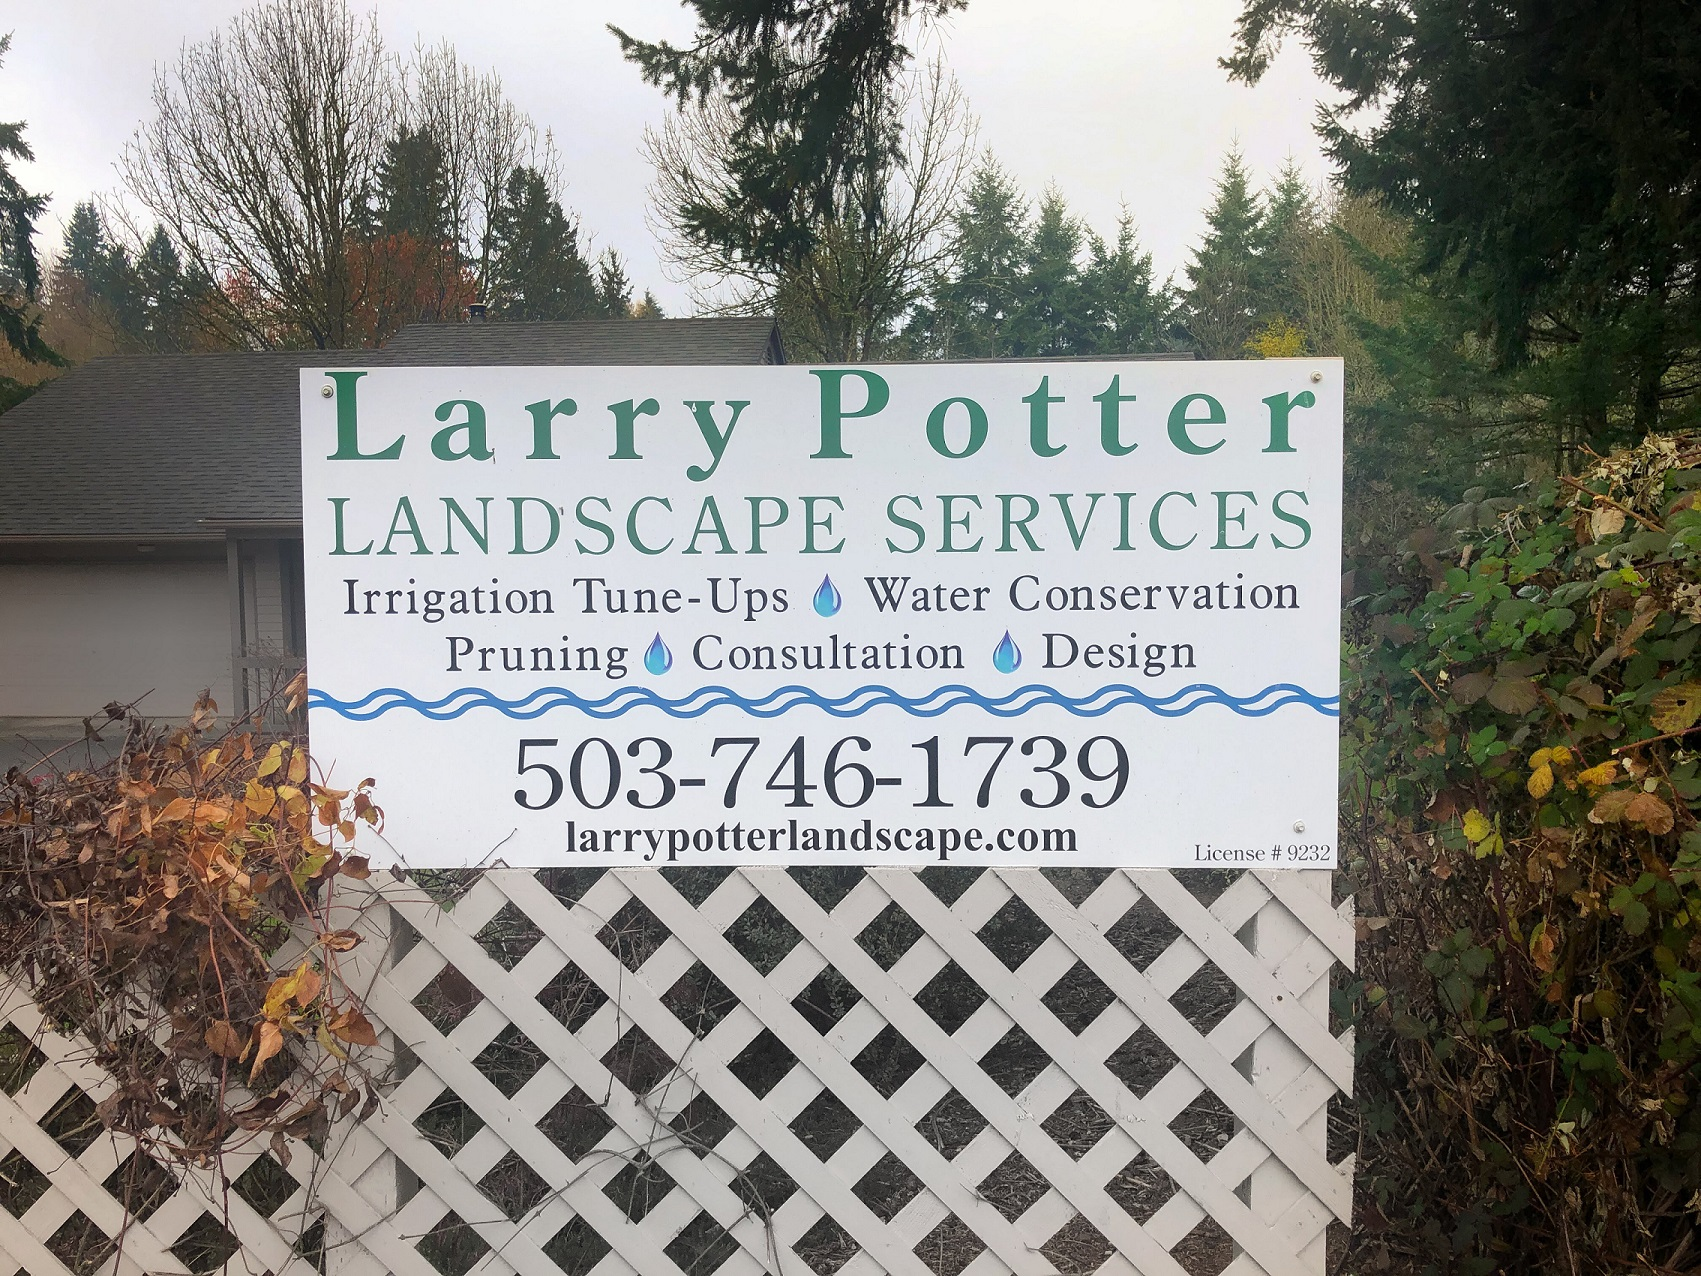 Larry Potter Landscape Services – EcoBiz Certified